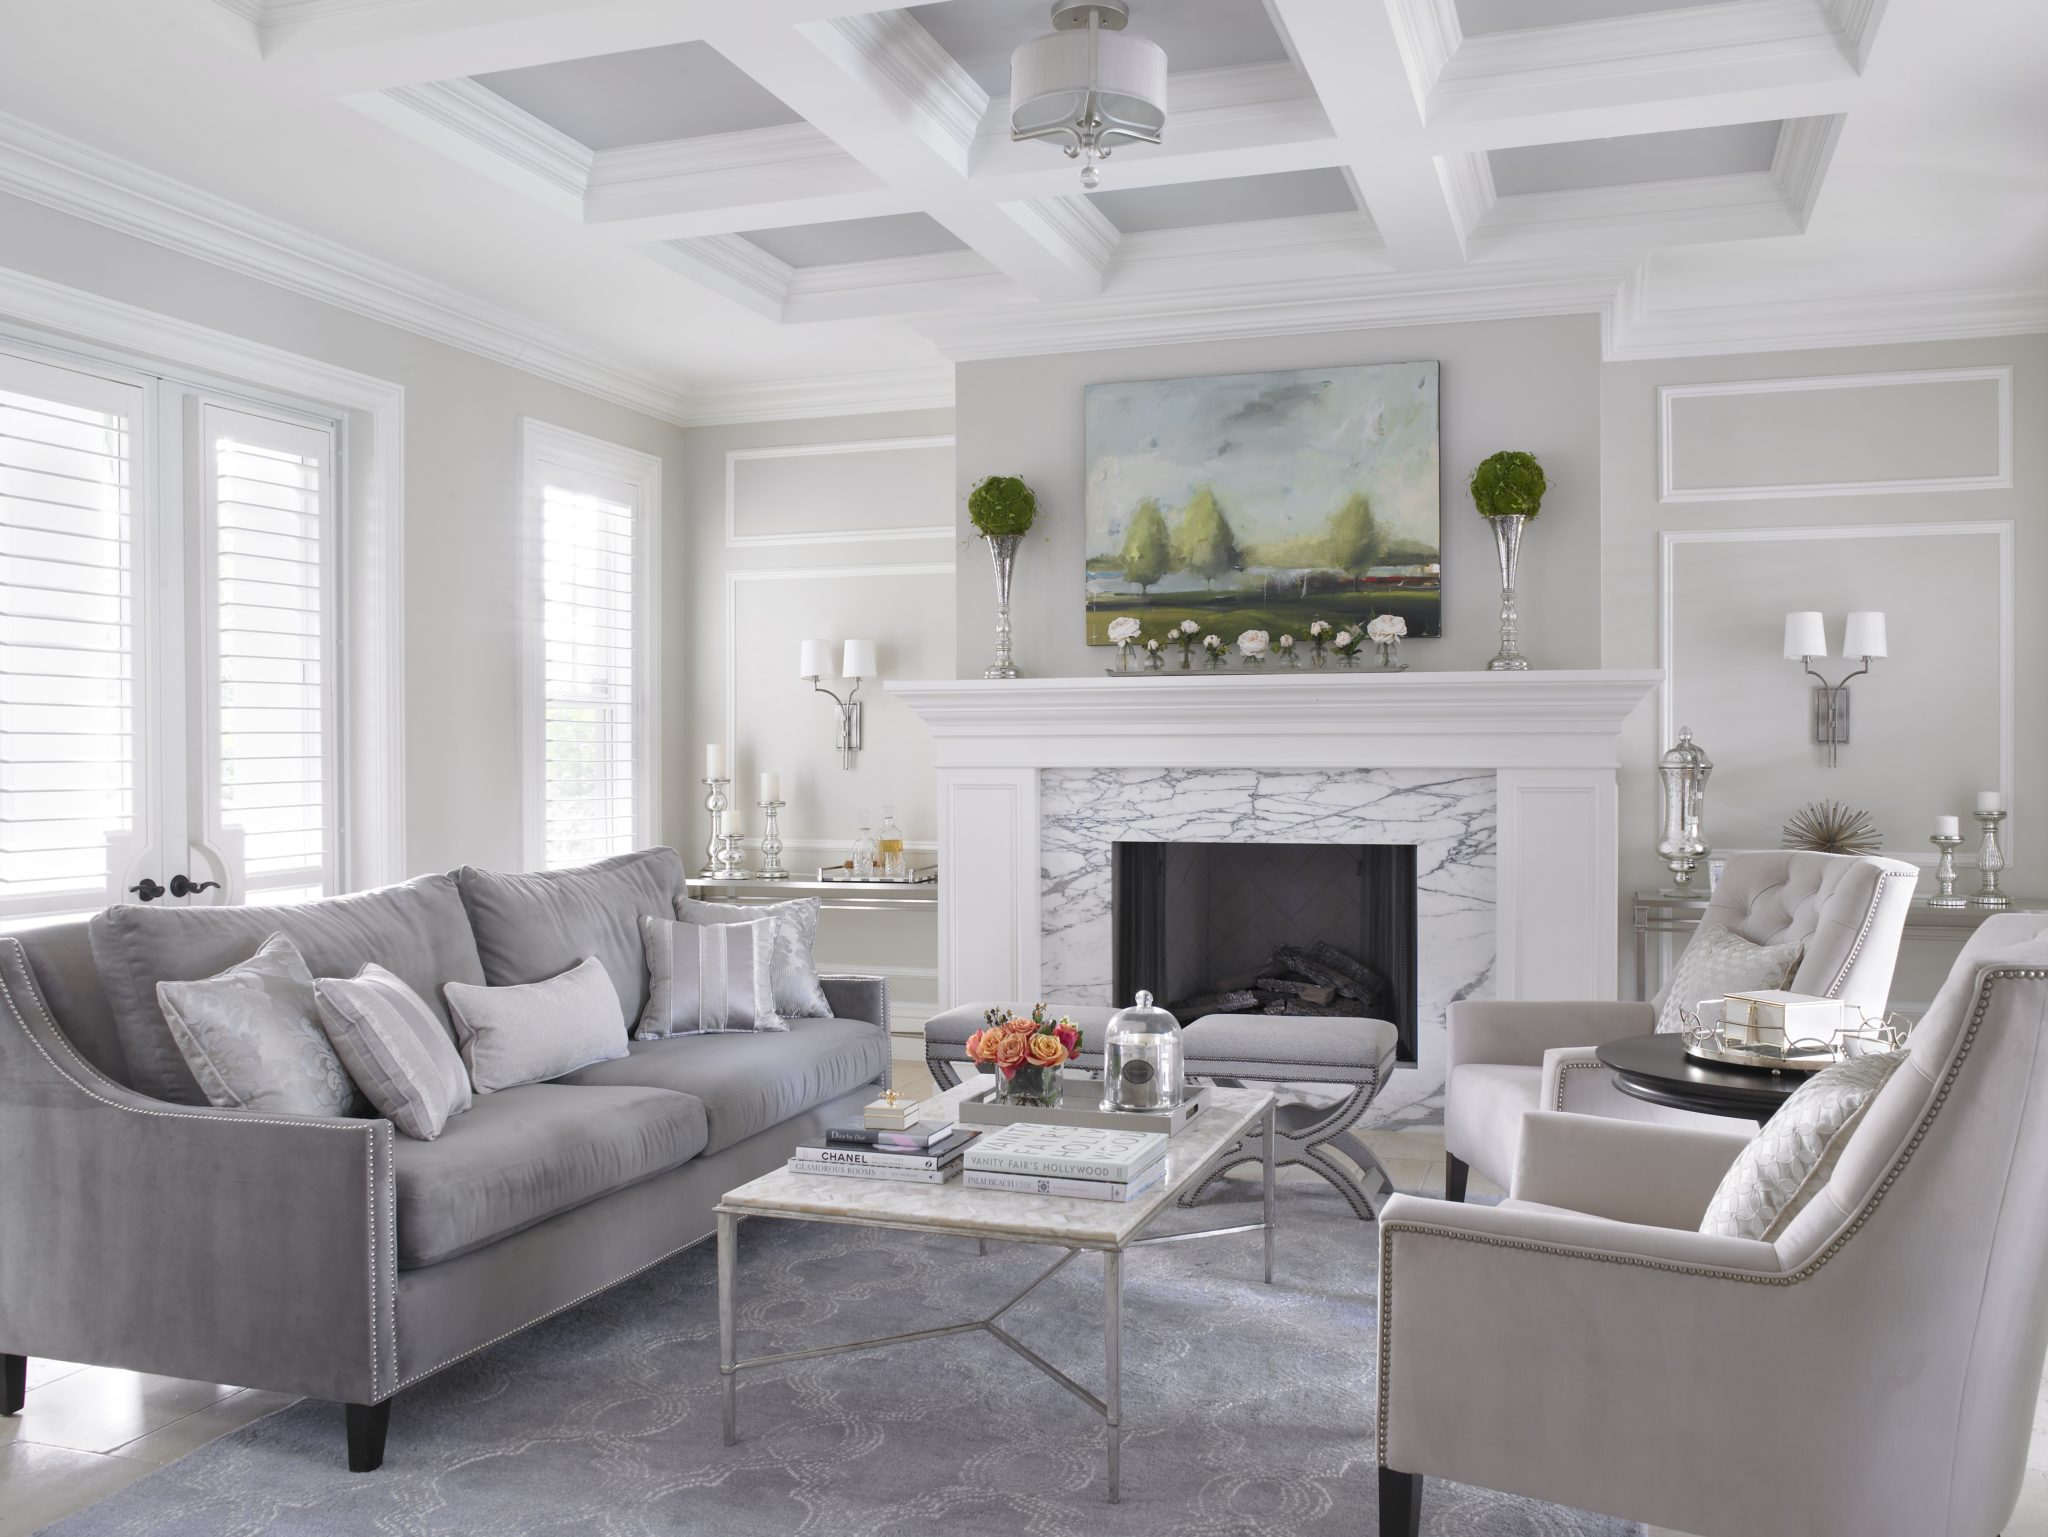 Chic monochromatic grey living room with custom ceiling & detail fireplace. by Jaime Blomquist Interiors